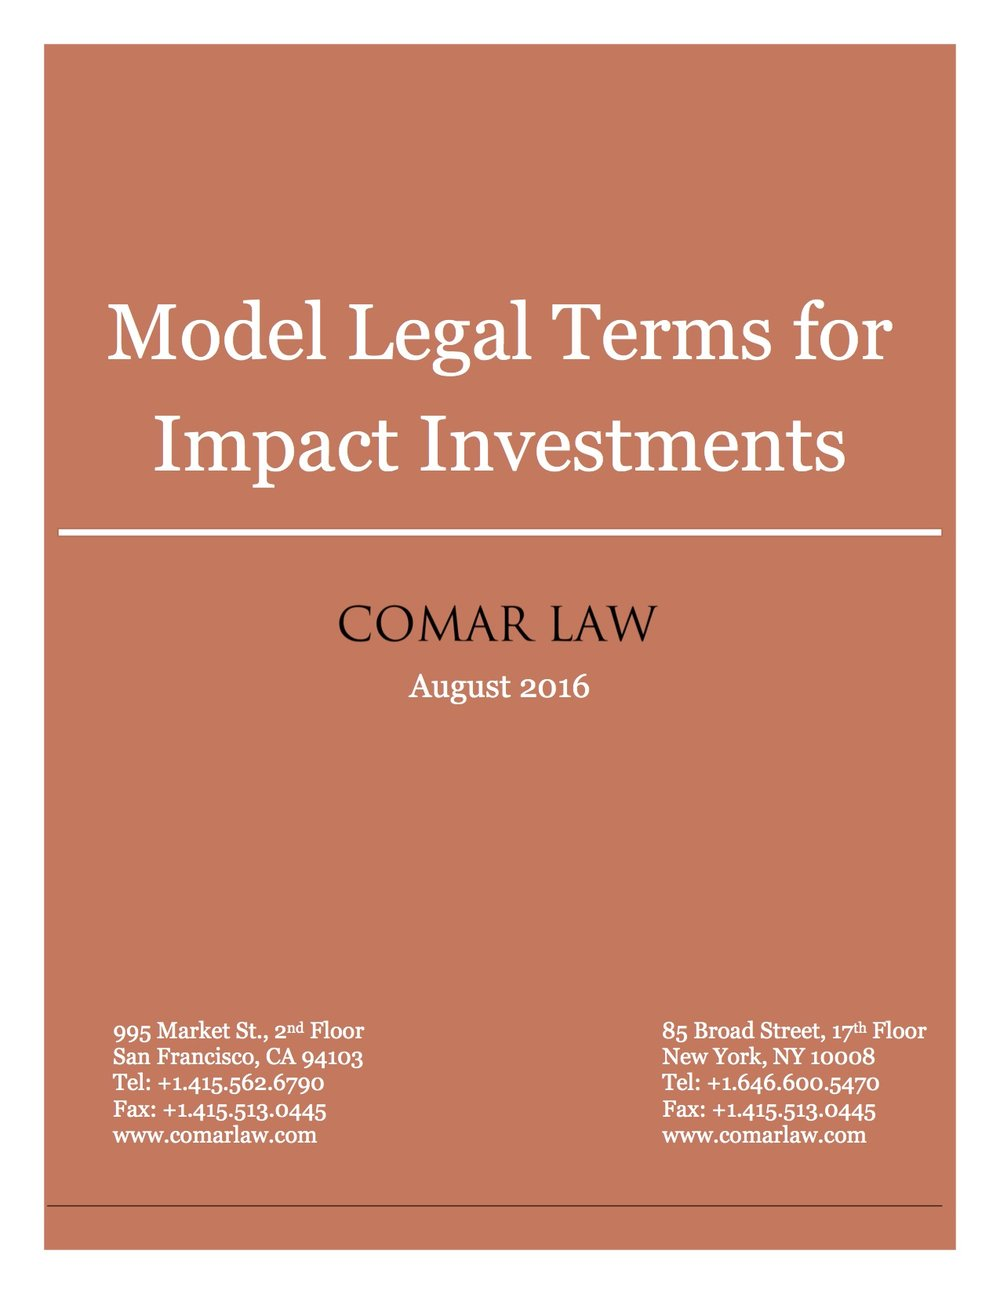 Model Legal Terms for Impact Investments.jpg